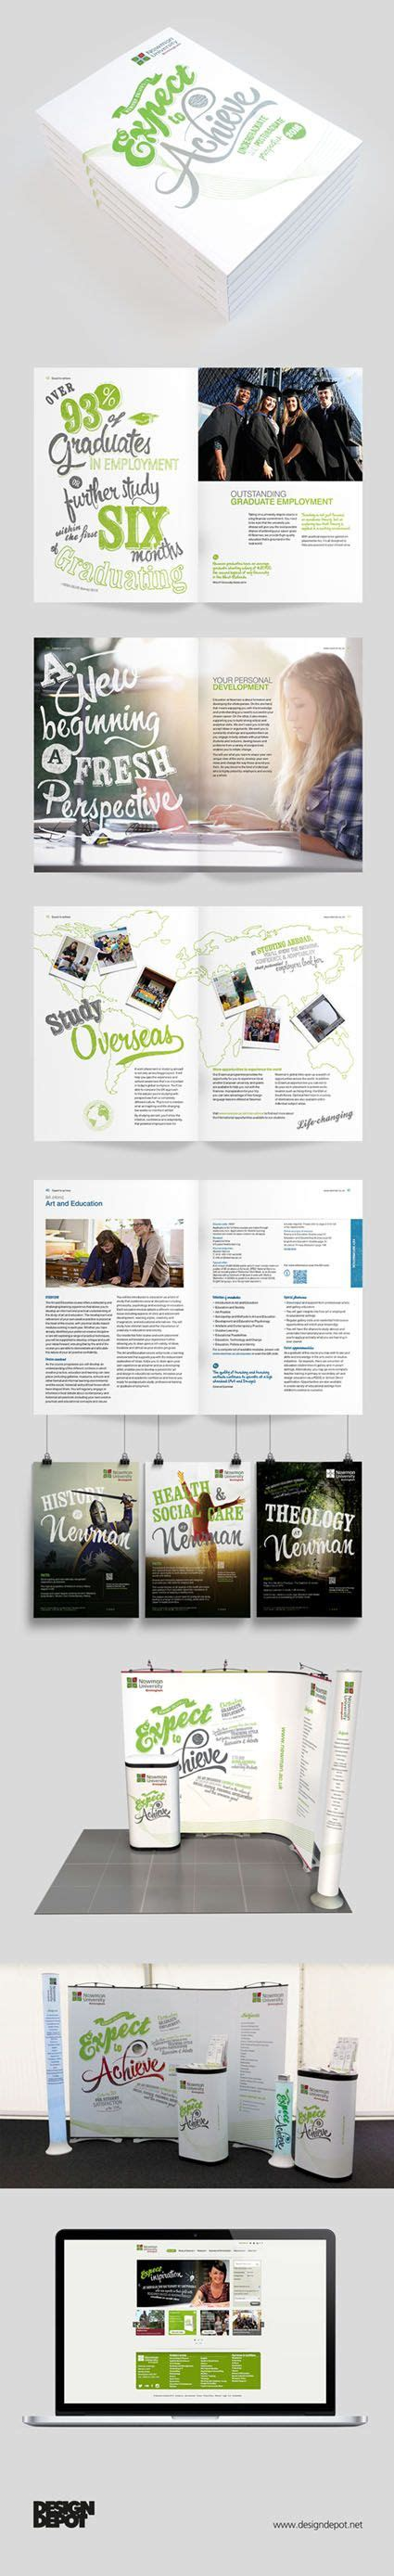 flyer design birmingham 965 best yearbook design ideas images on pinterest